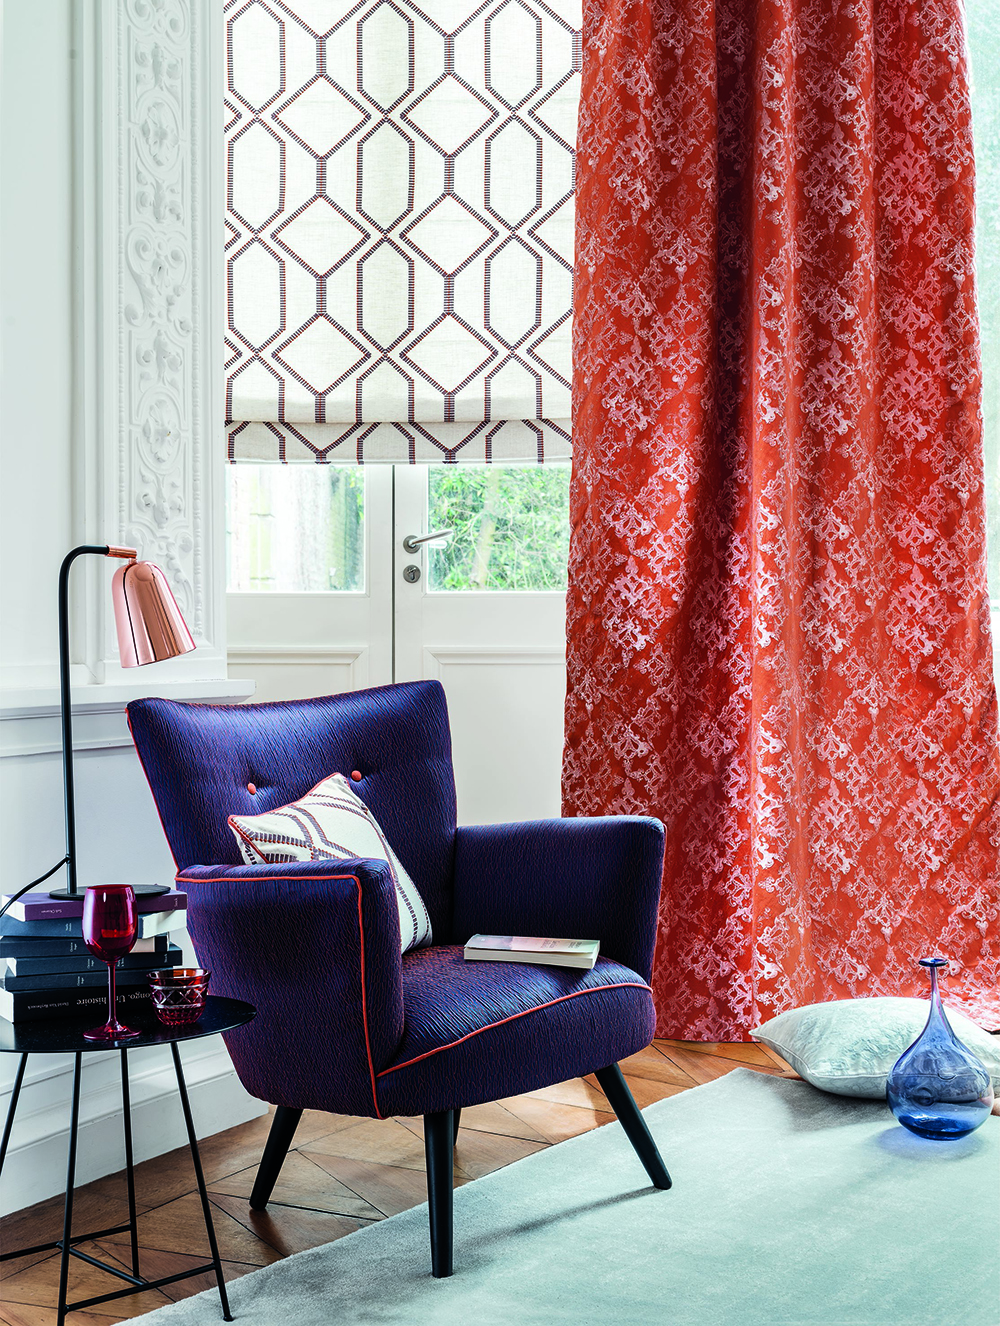 Orange red curtains in mid-century modern room.